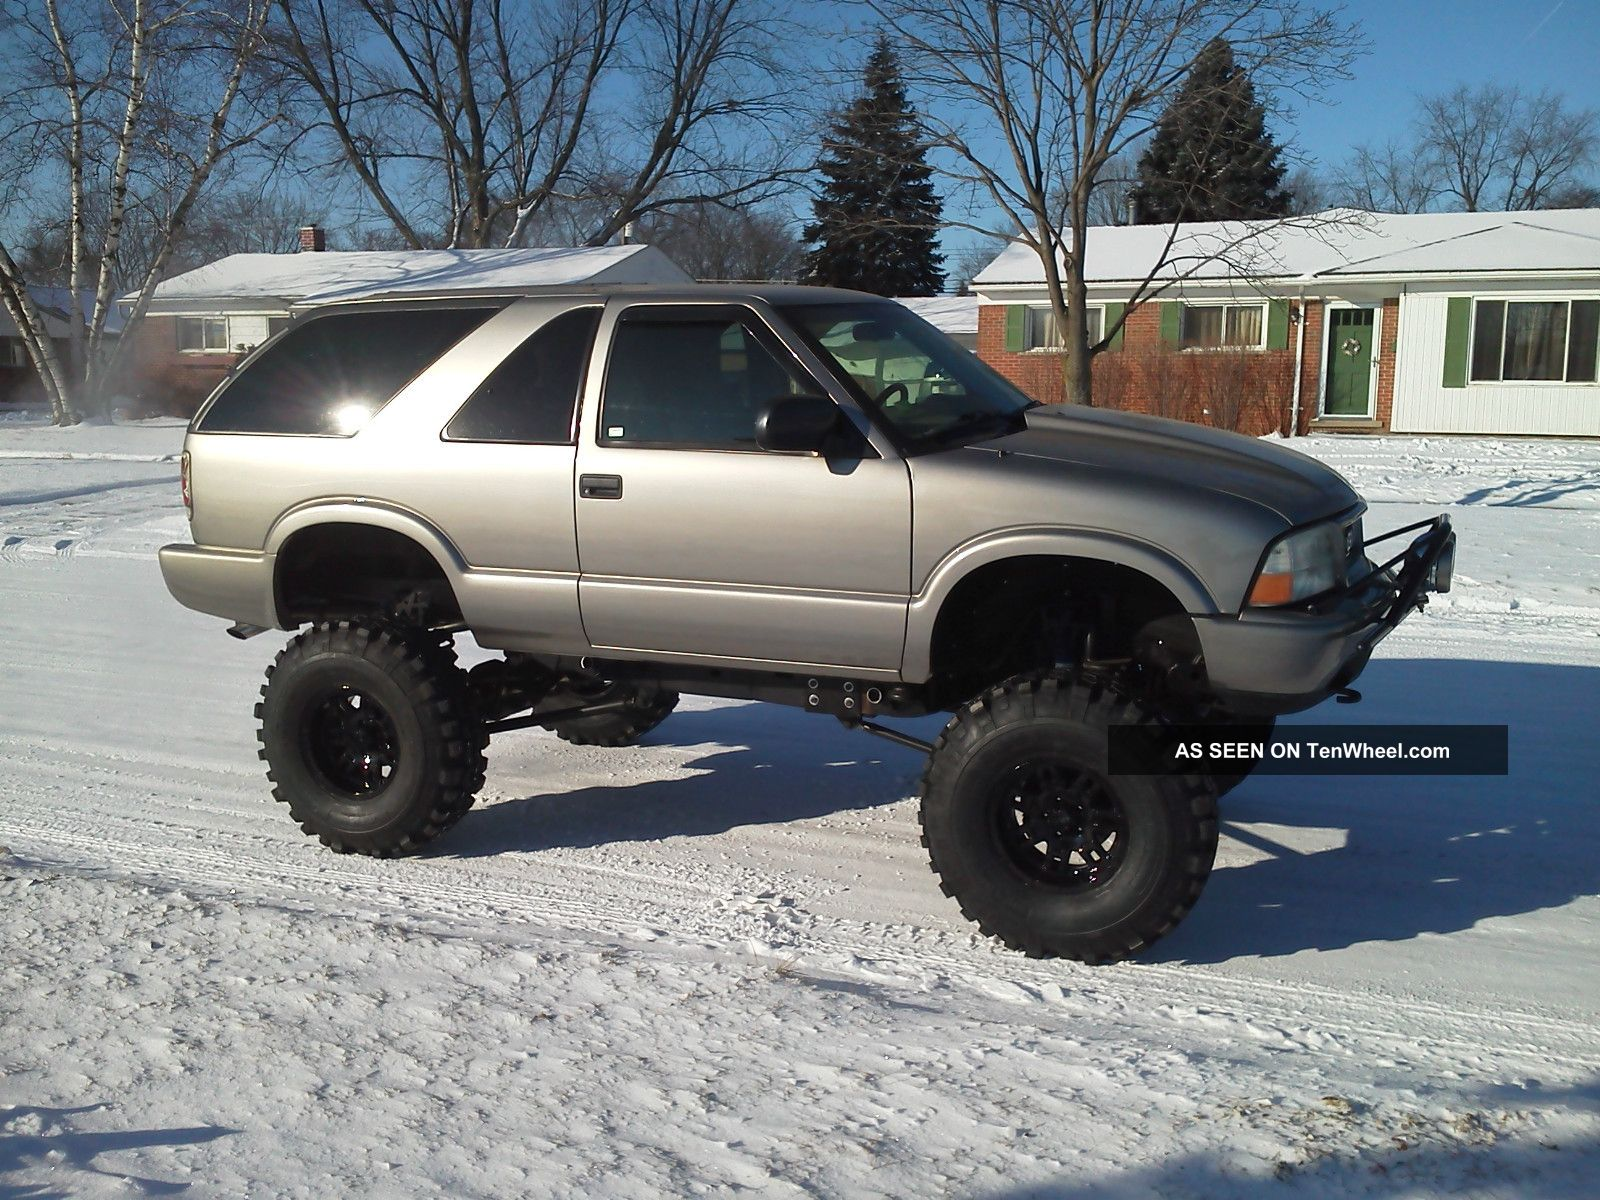 1999 lifted gmc jimmy 4x4 solid axle offroad crawler trail mud truck long arm tenwheel